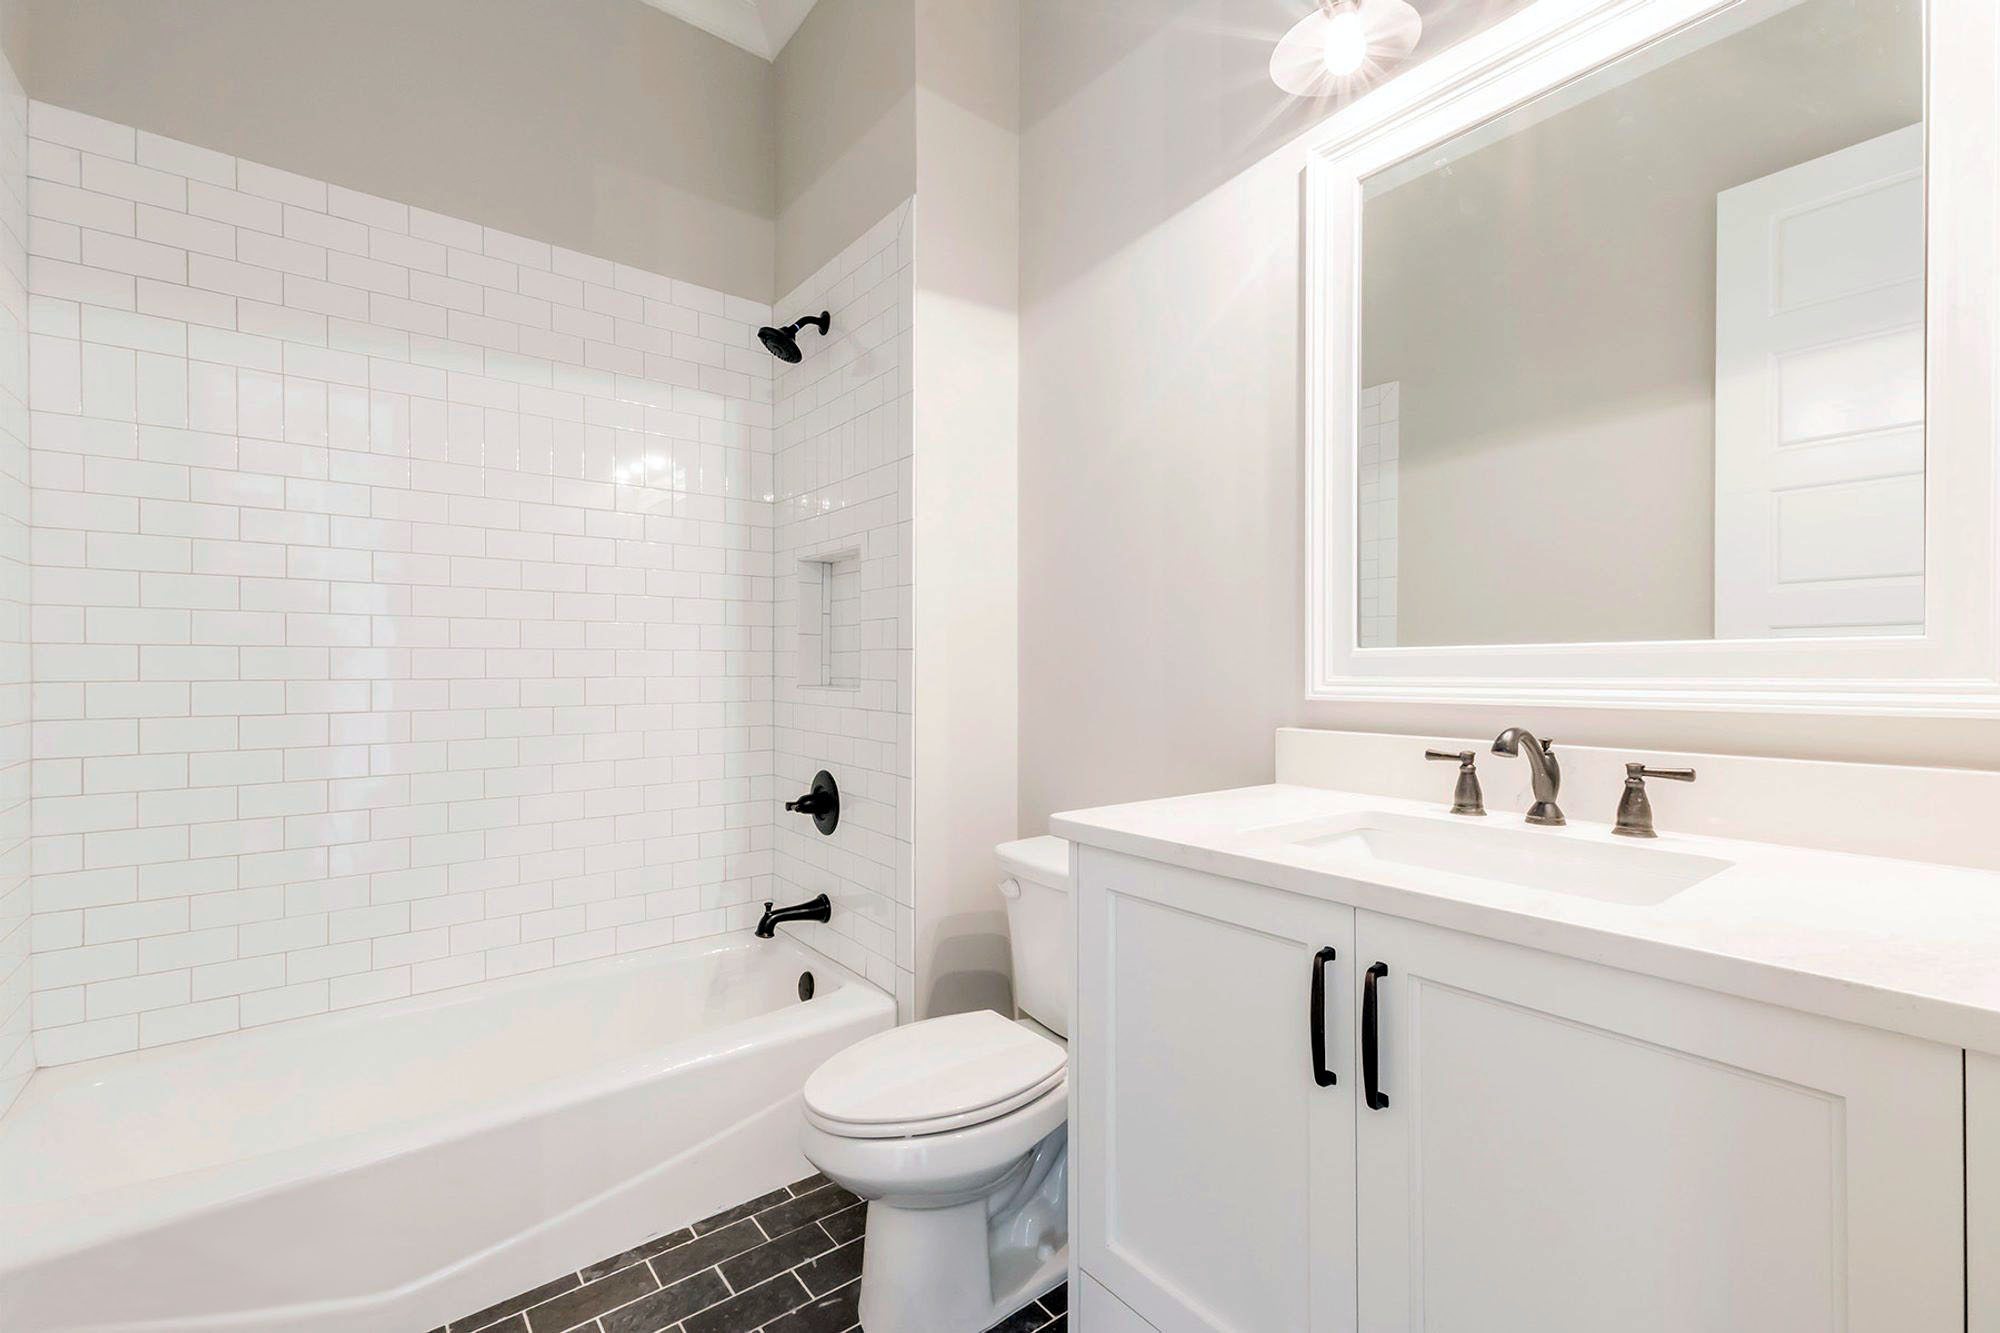 Full bathroom with a single sink vanity, elongated toilet and tub/shower combo.